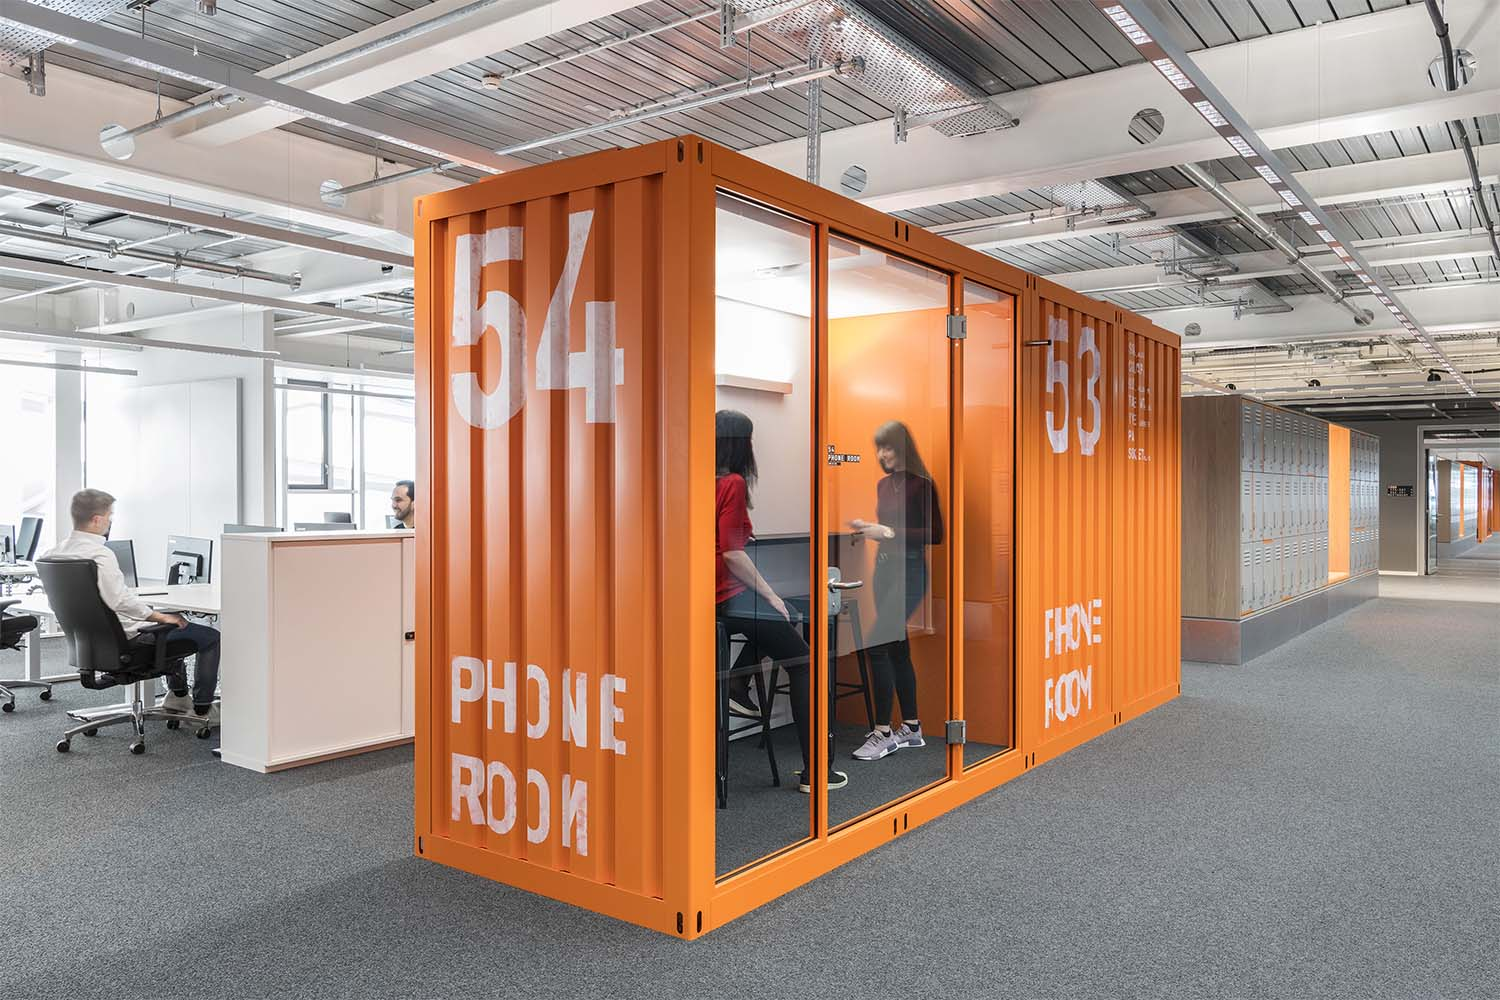 A modular system of customized work booths resembling shipping containers structures the workspace and provides a broad array of functions. David Matthiessen